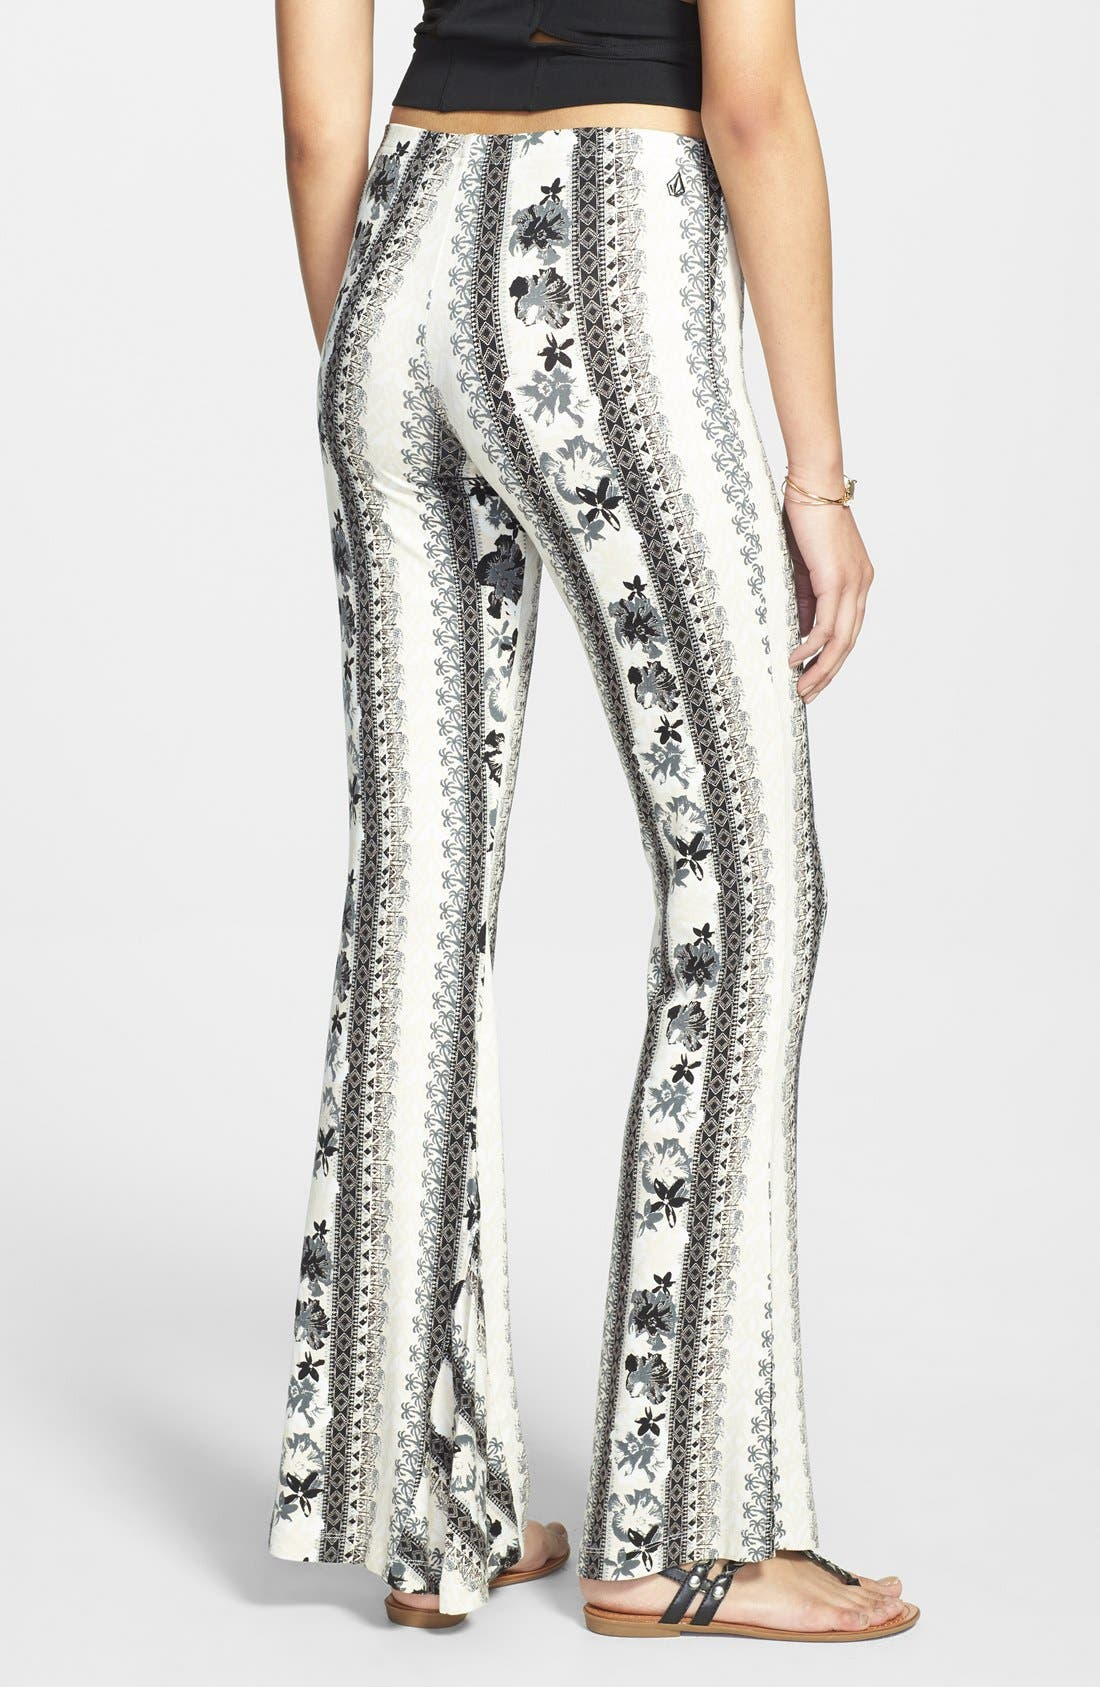 VOLCOM,                             'Skippin Town' Patterned Flare Pants,                             Alternate thumbnail 2, color,                             001